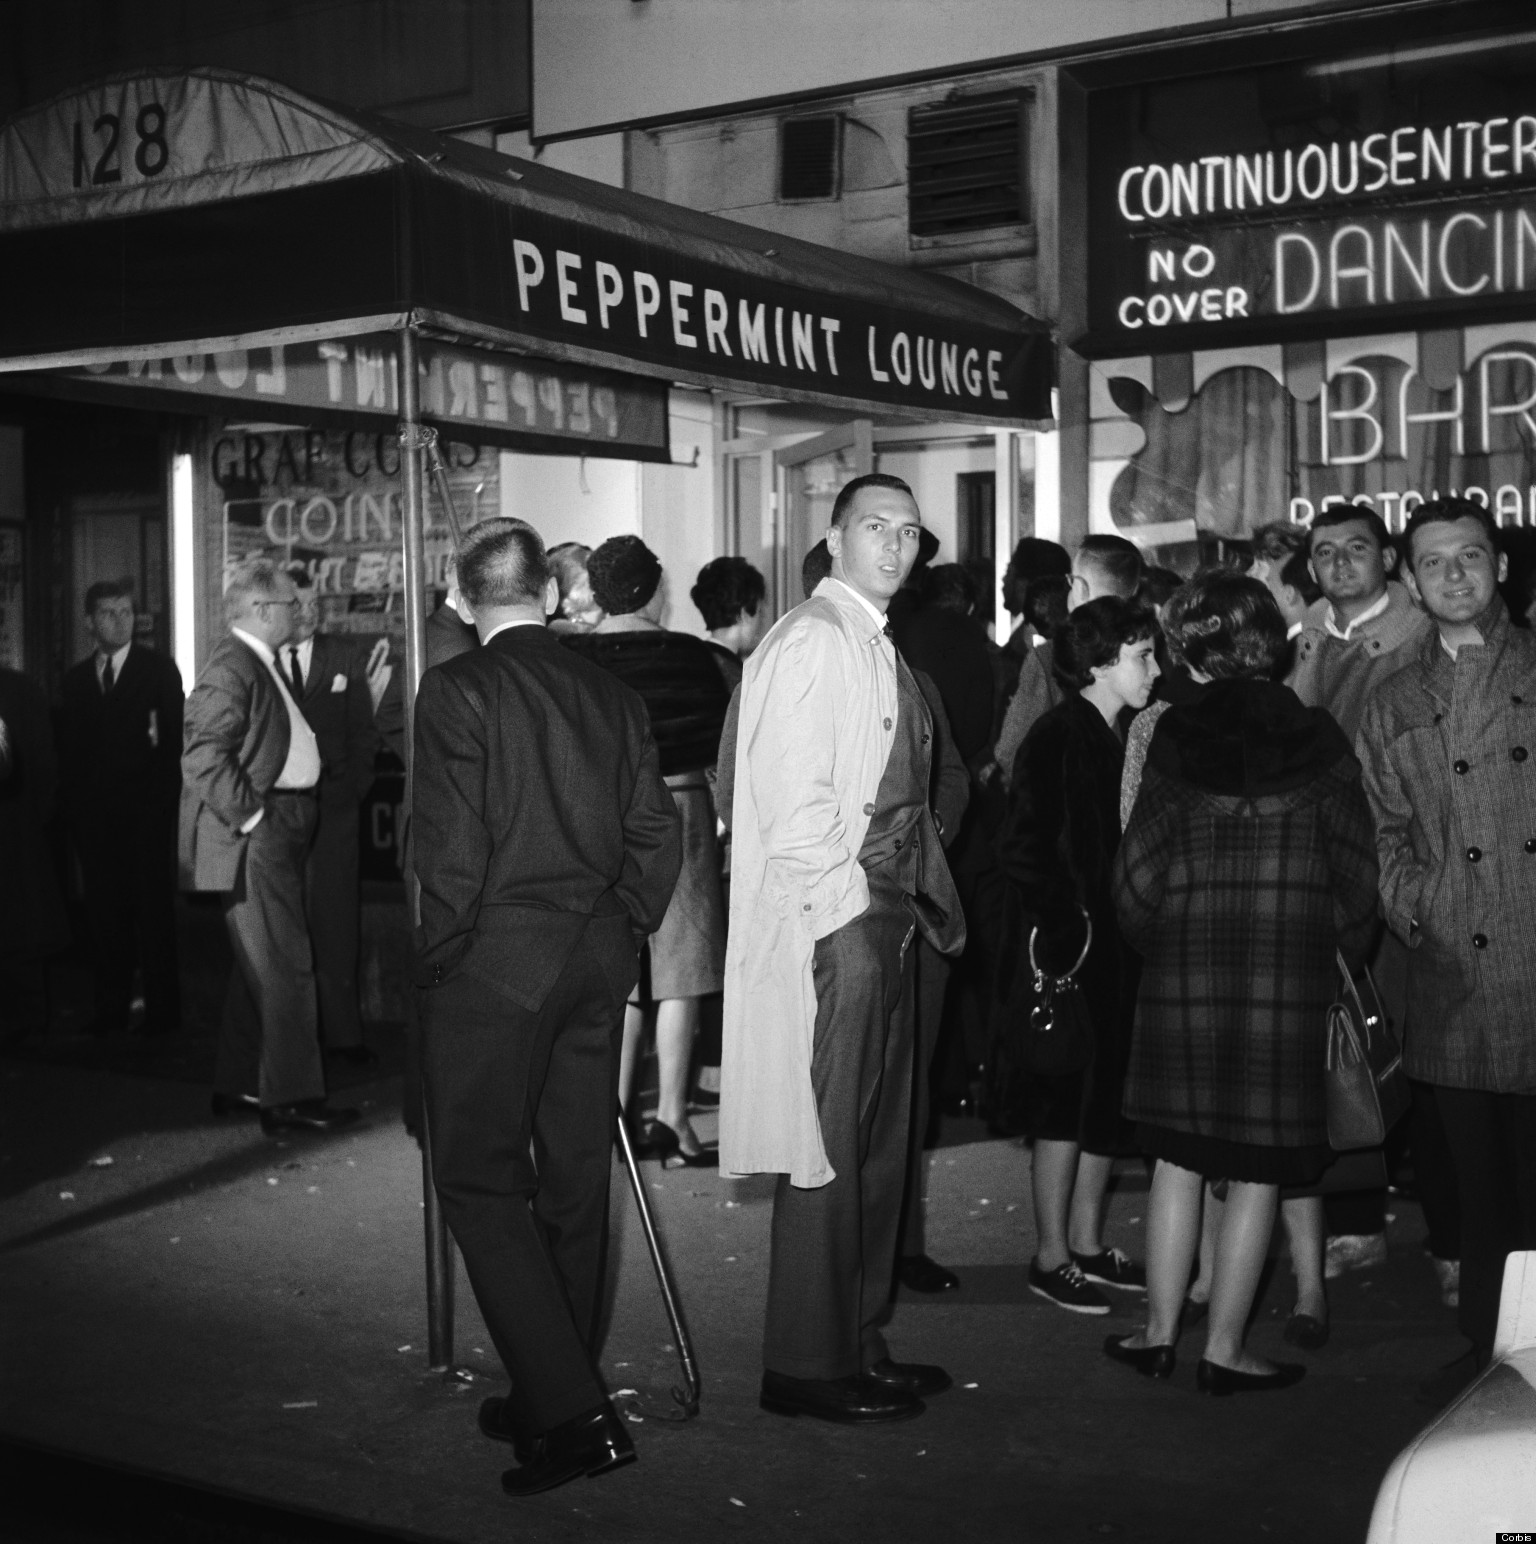 Crowds outside The Peppermint Lounge